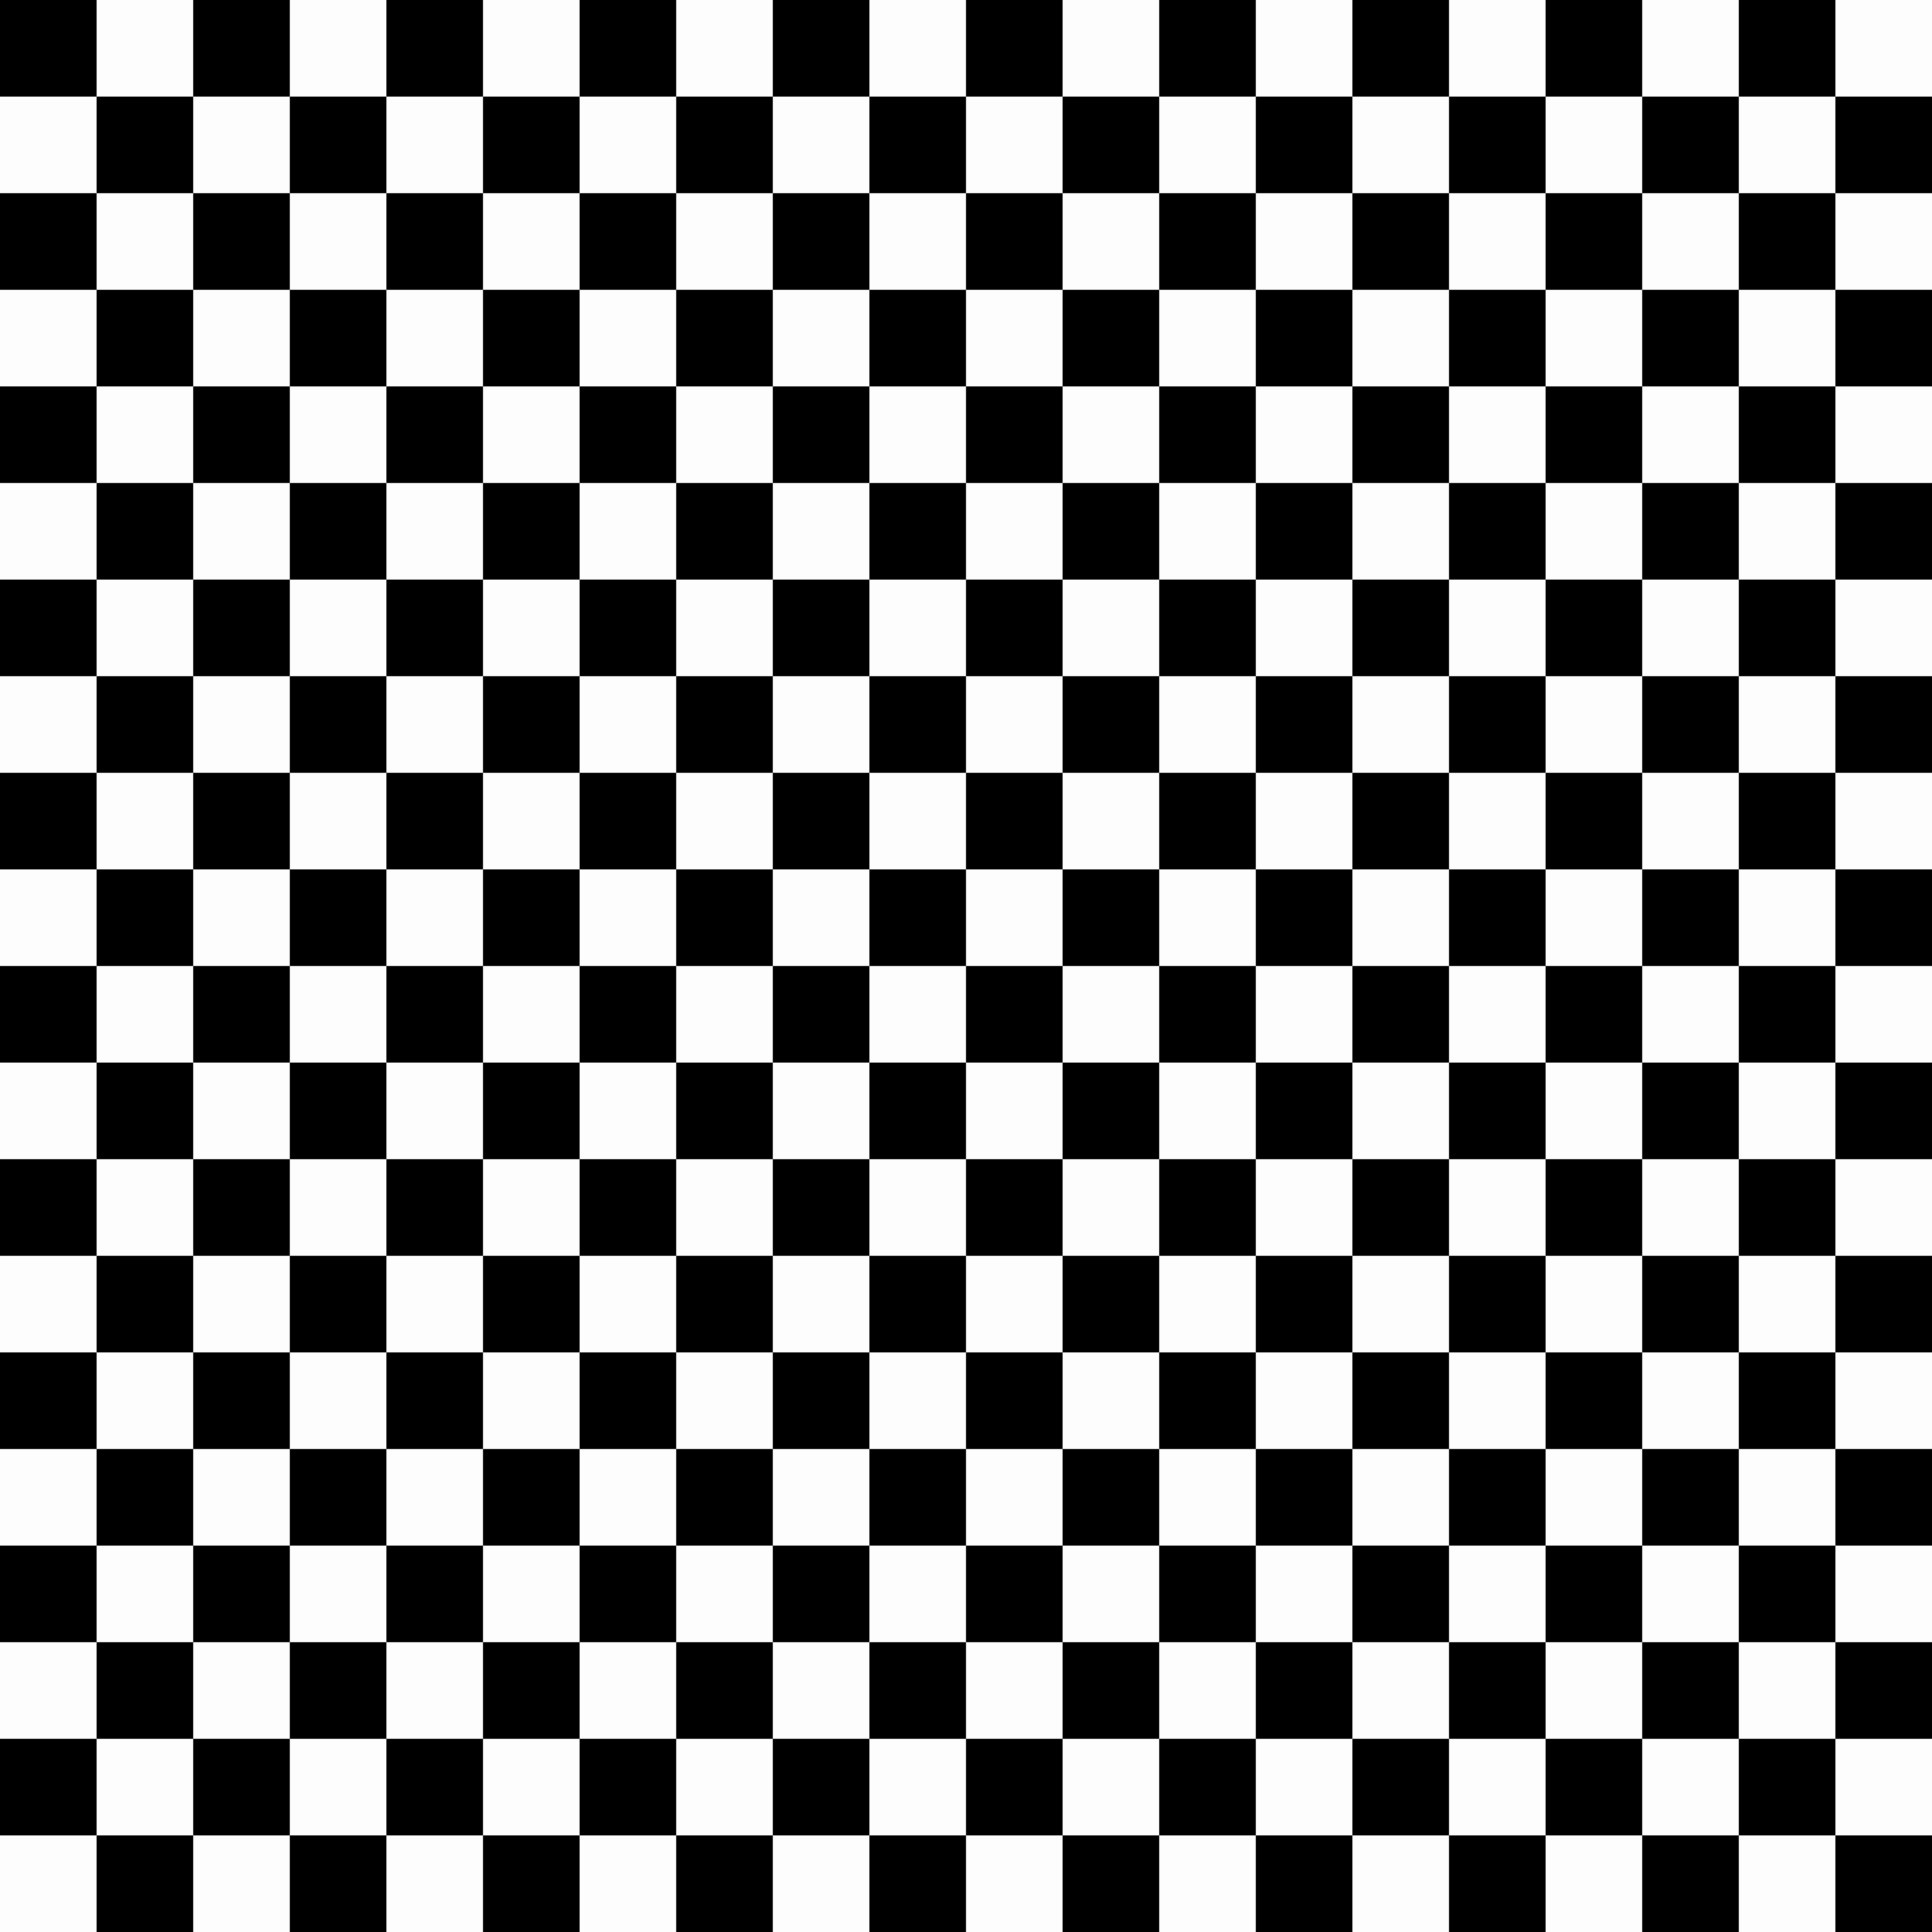 Pictures Of A Checker Board New Black and White Checkerboard Pattern Free Clip Art